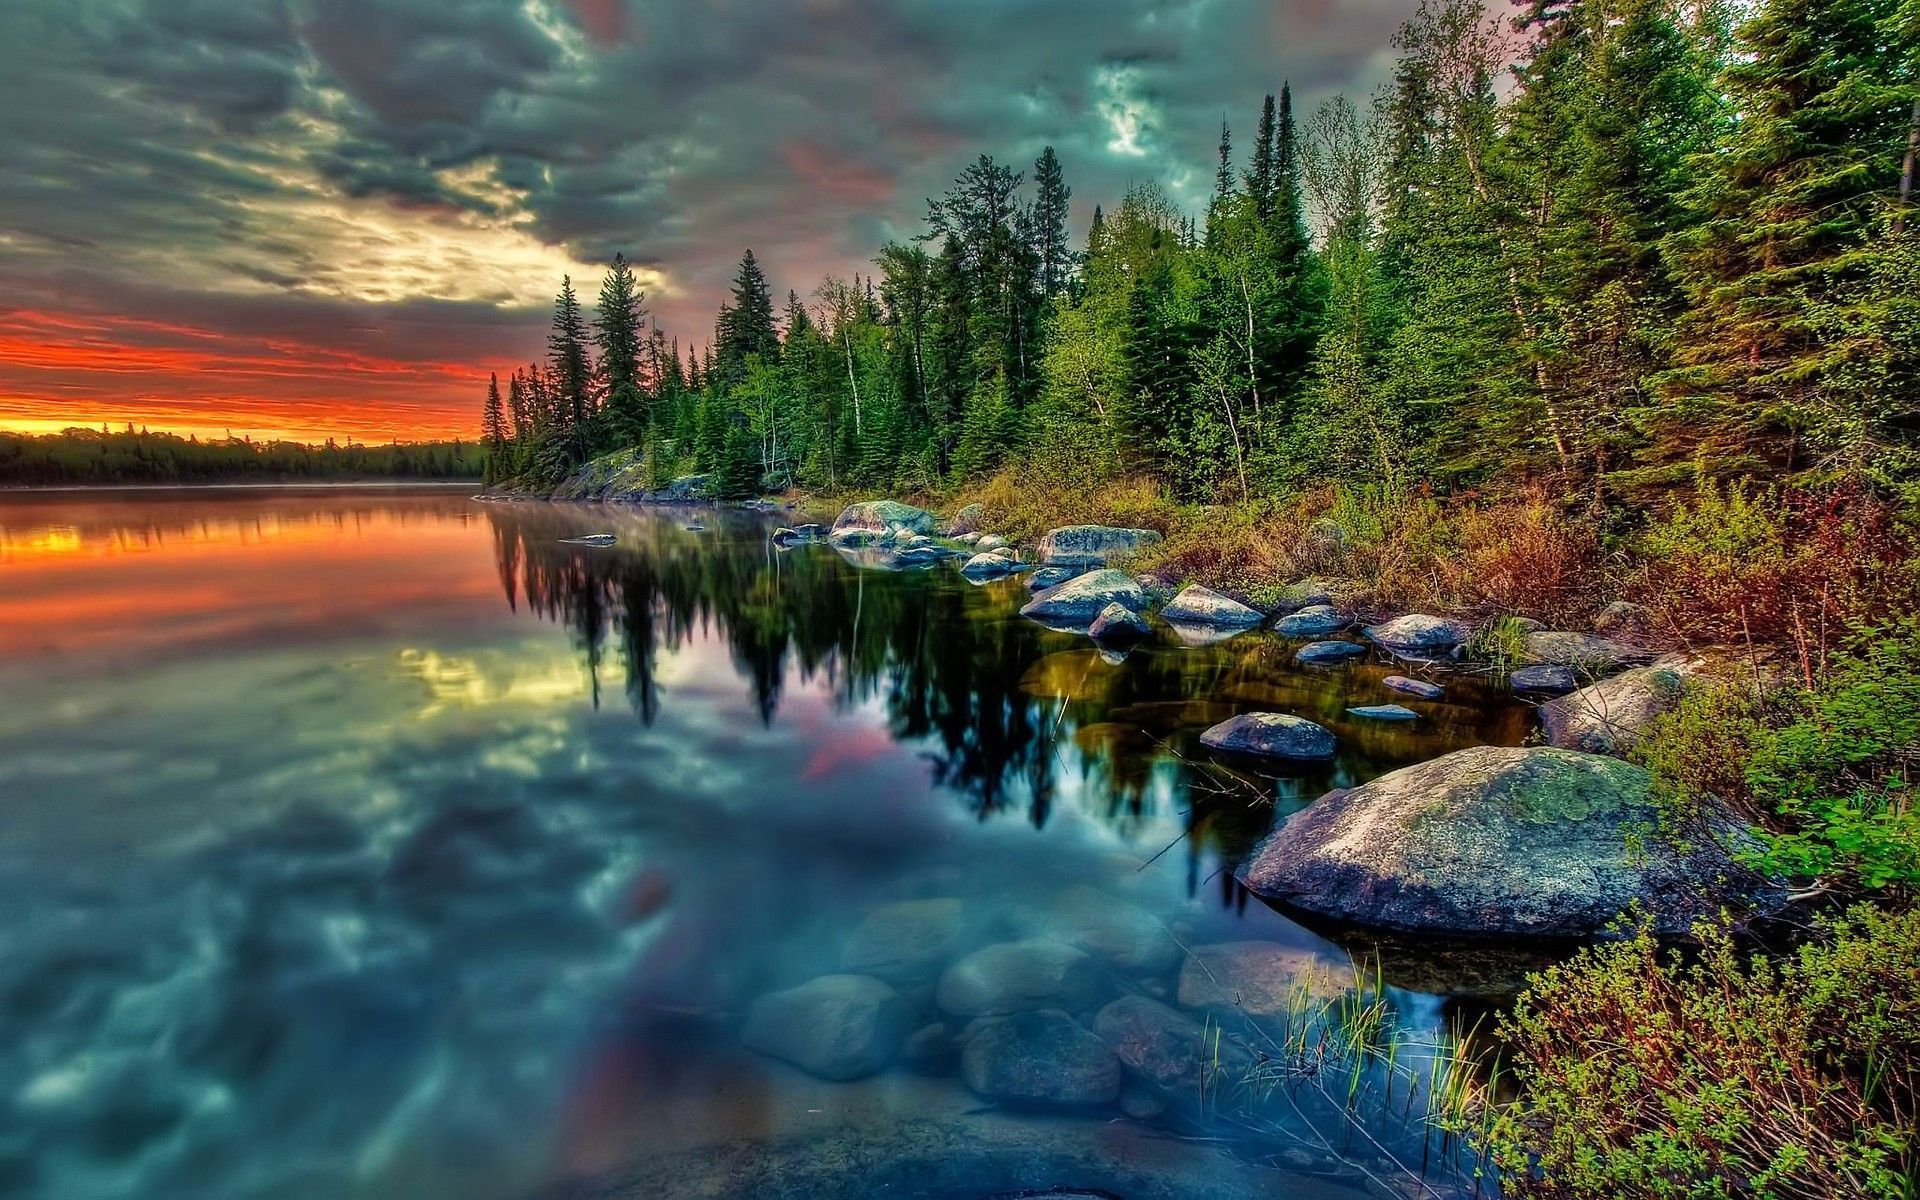 Spring Nature Live Wallpaper Android Apps On Google Play Beautiful Nature Nature Desktop Beautiful Nature Wallpaper